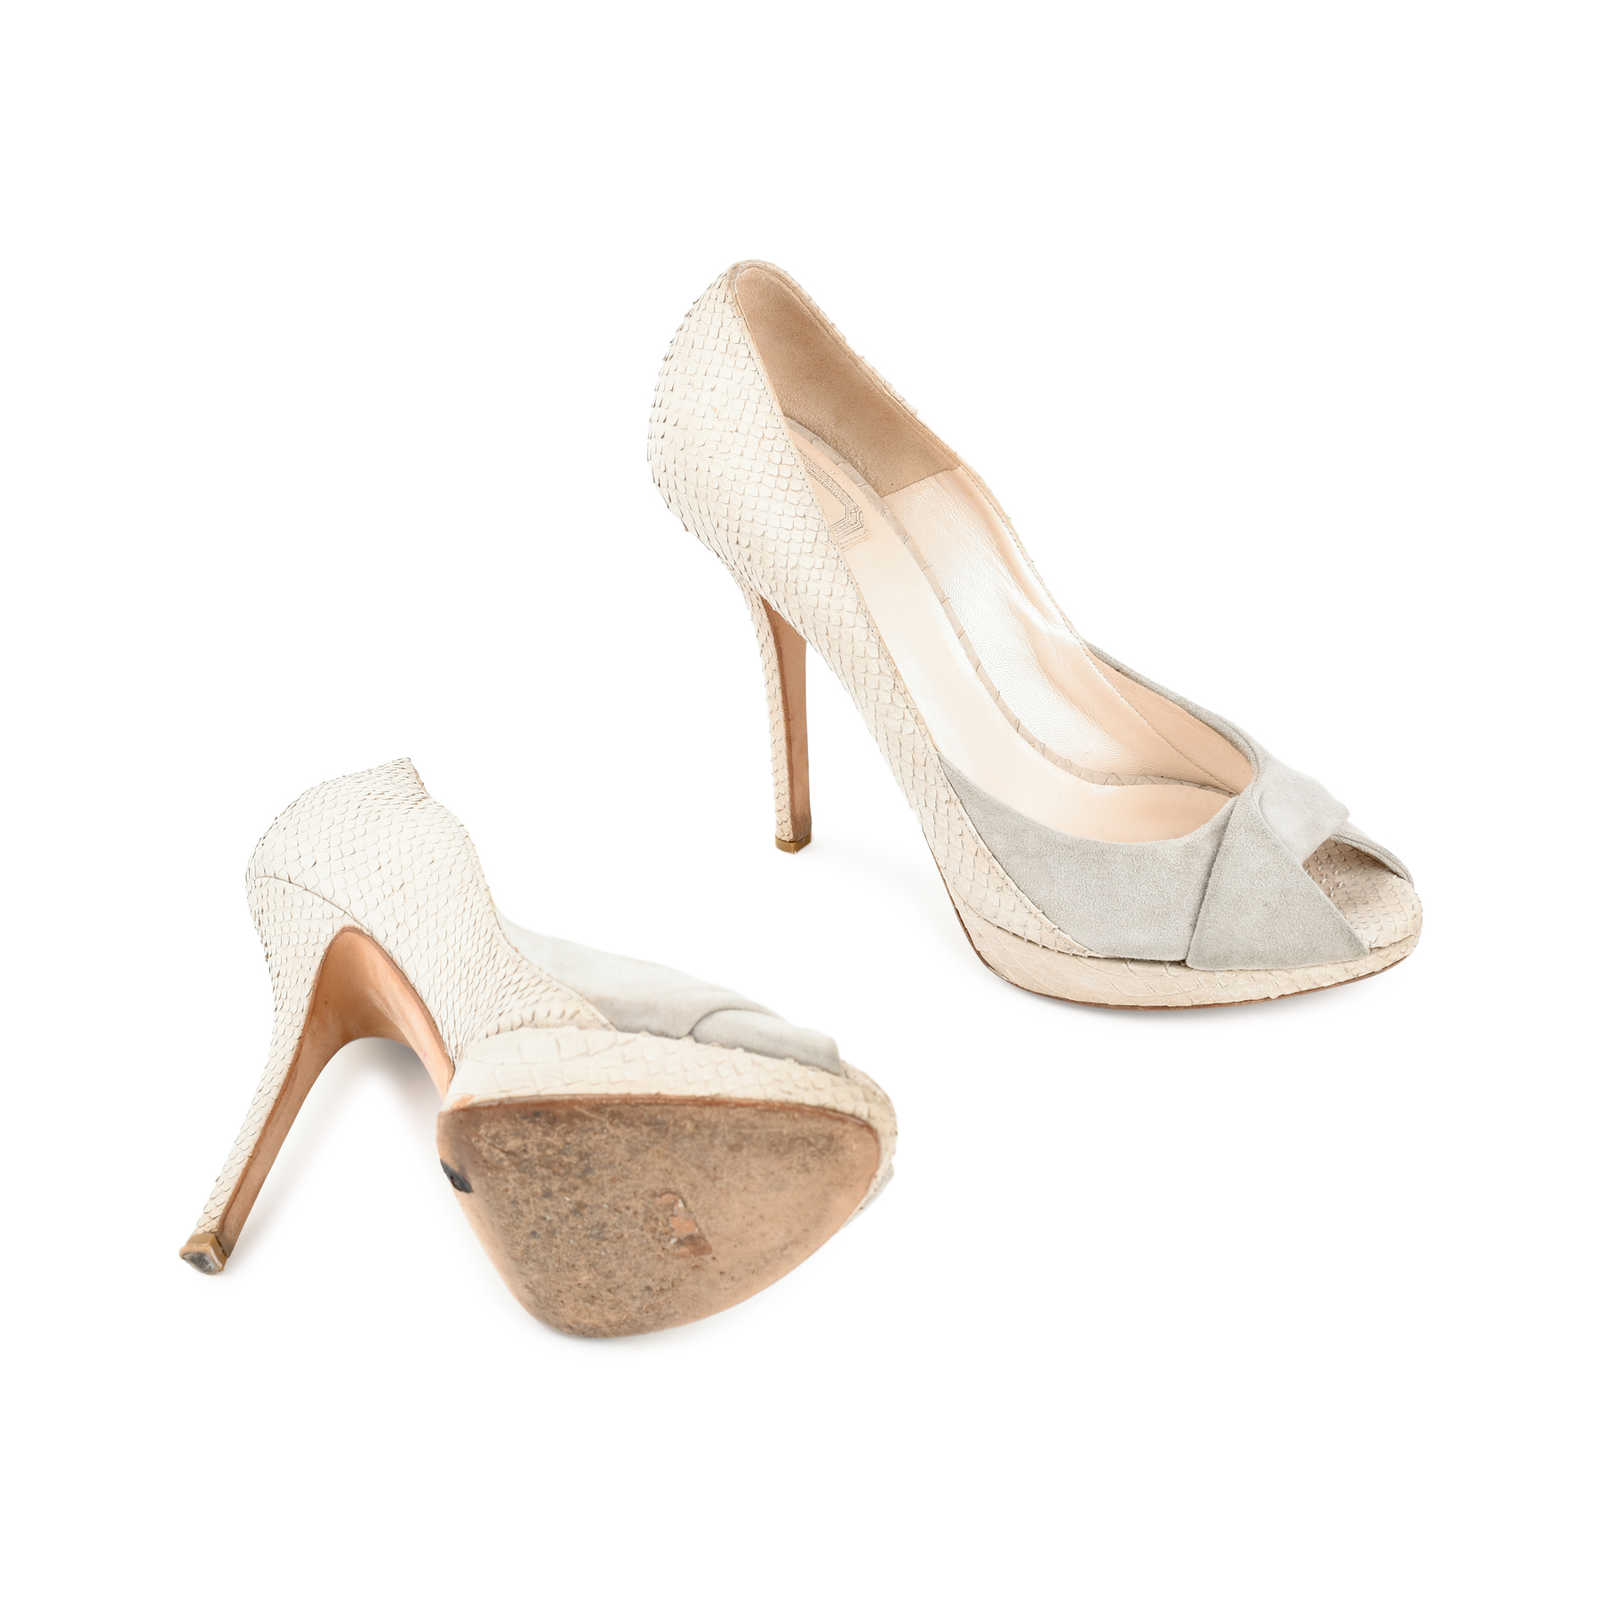 Christian Dior Python Peep-Toe Pumps Wiki Cheap Price Cheap Great Deals Looking For Online Release Dates Cheap Price Great Deals Cheap Online qlRG0vR5